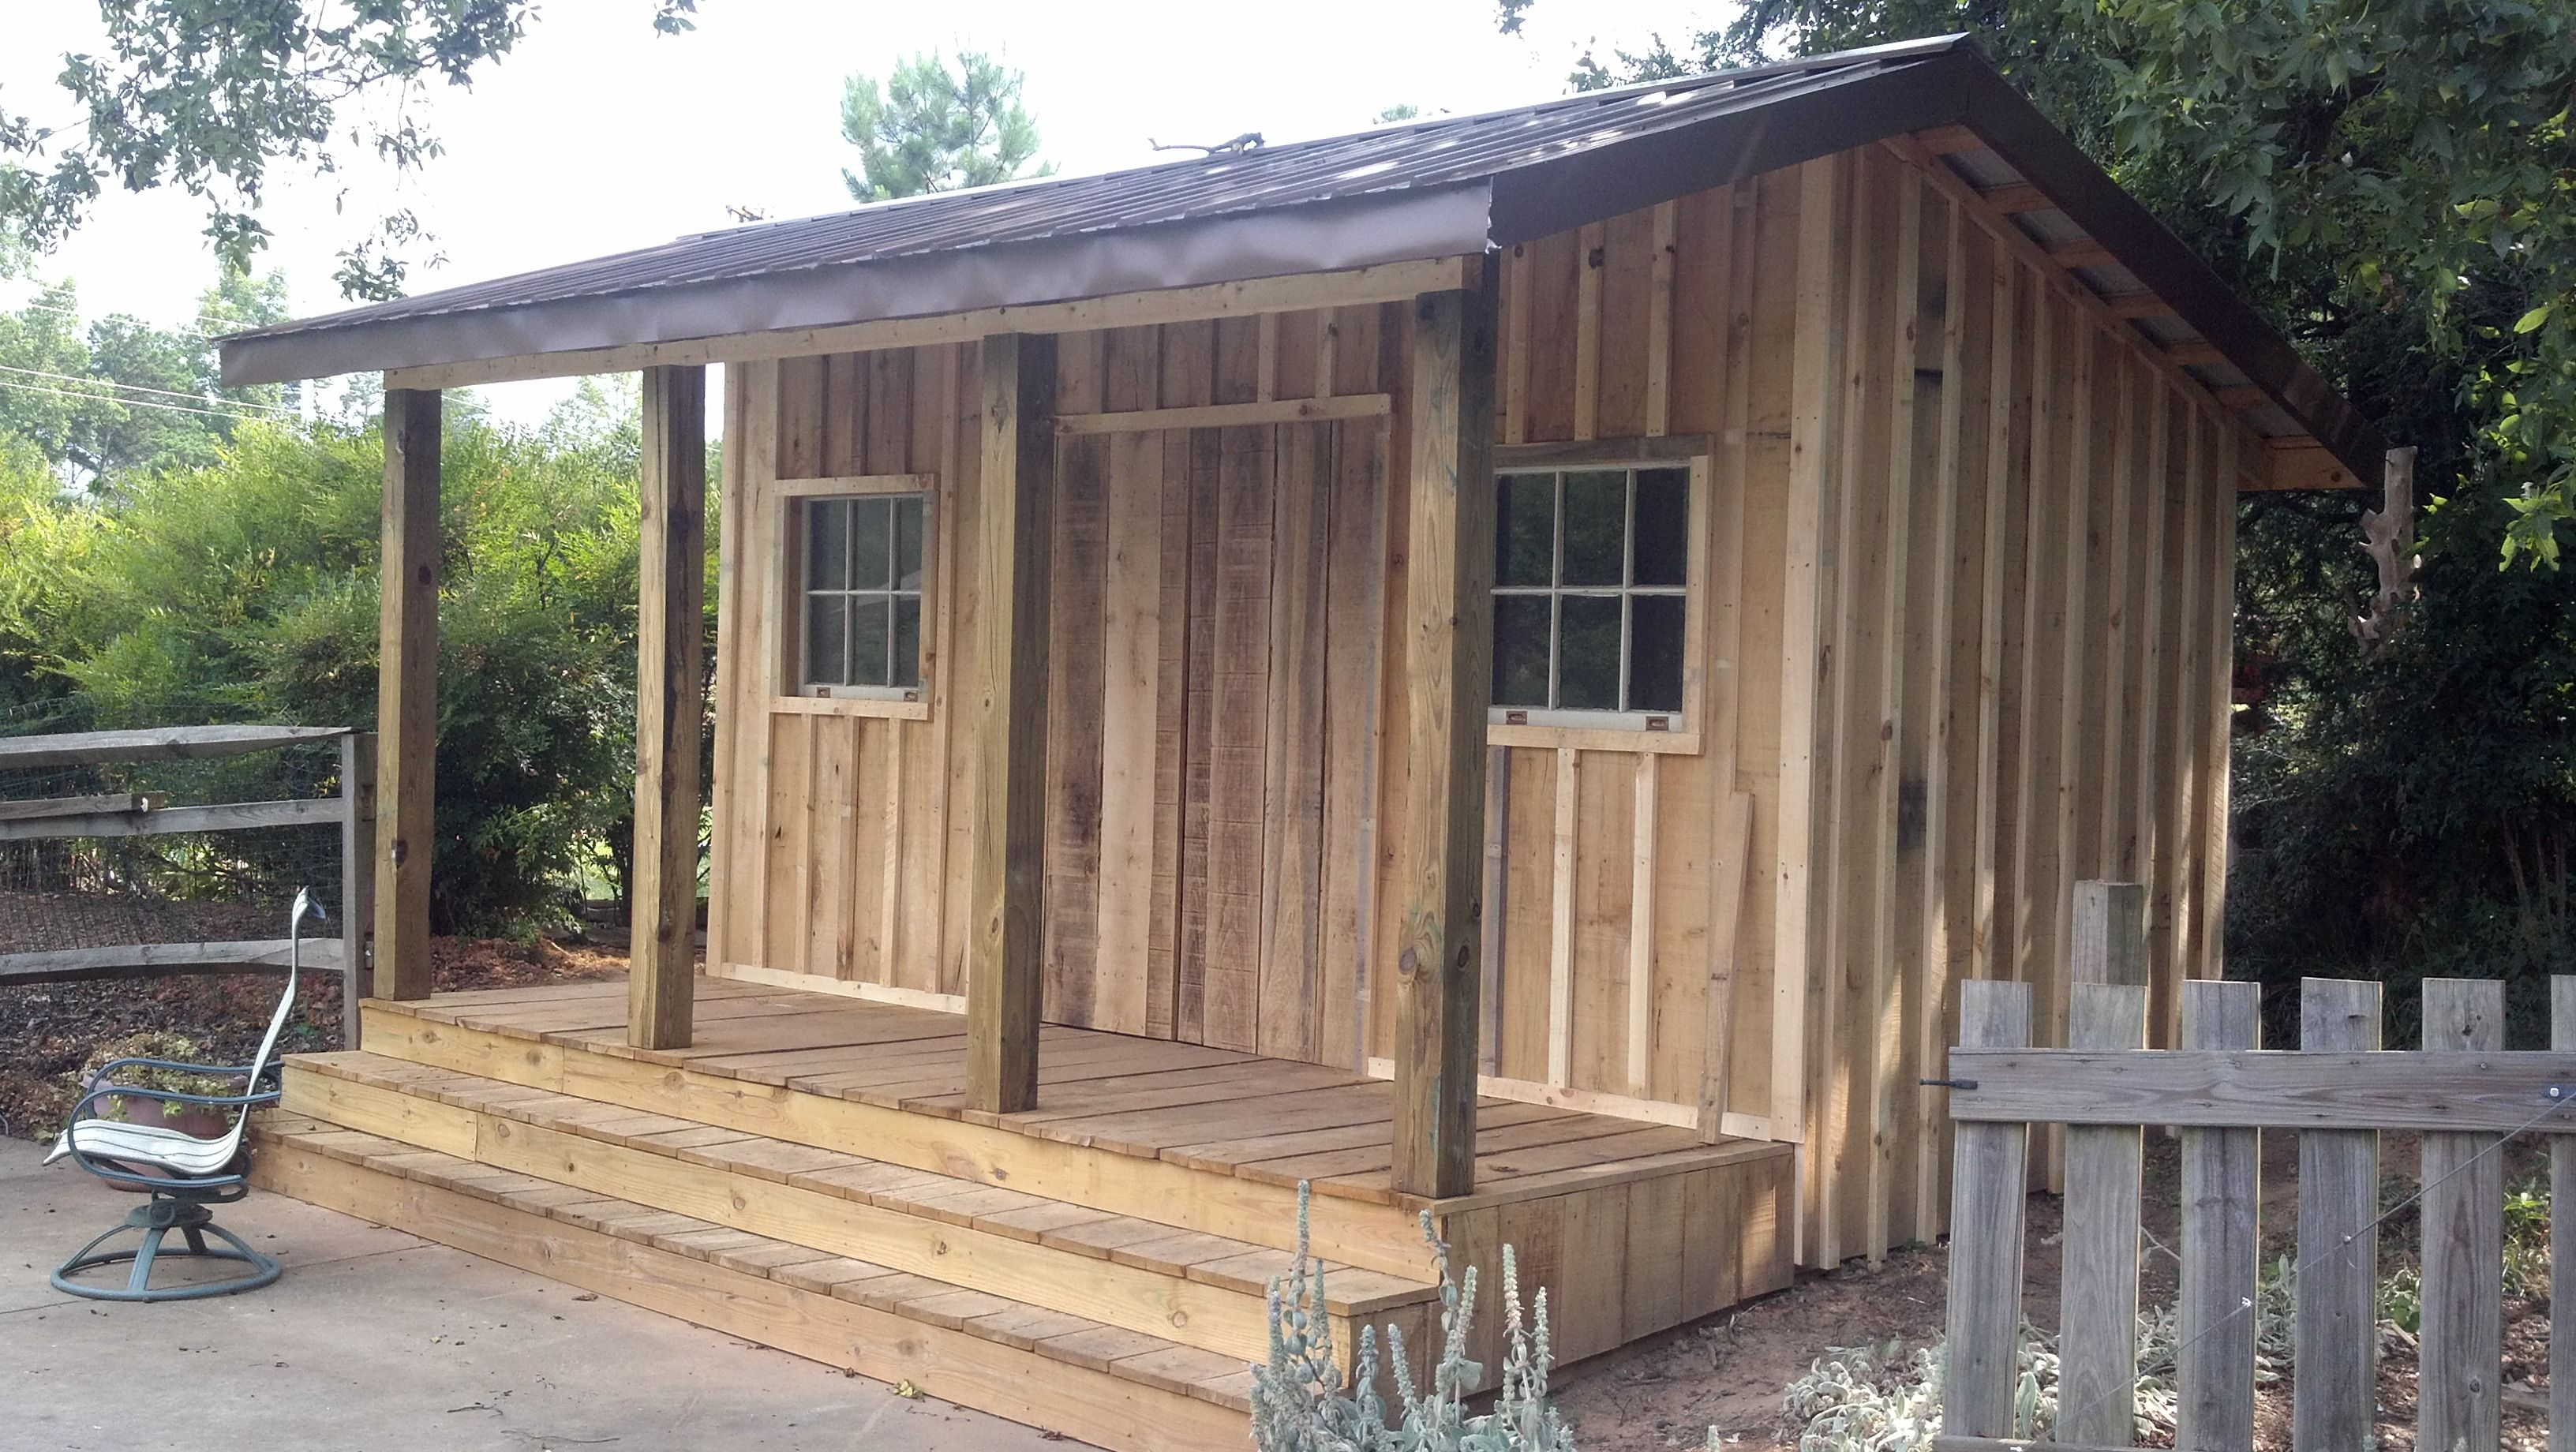 Small Cabin Or Shed In Rough Cut Lumber Cabin Fever